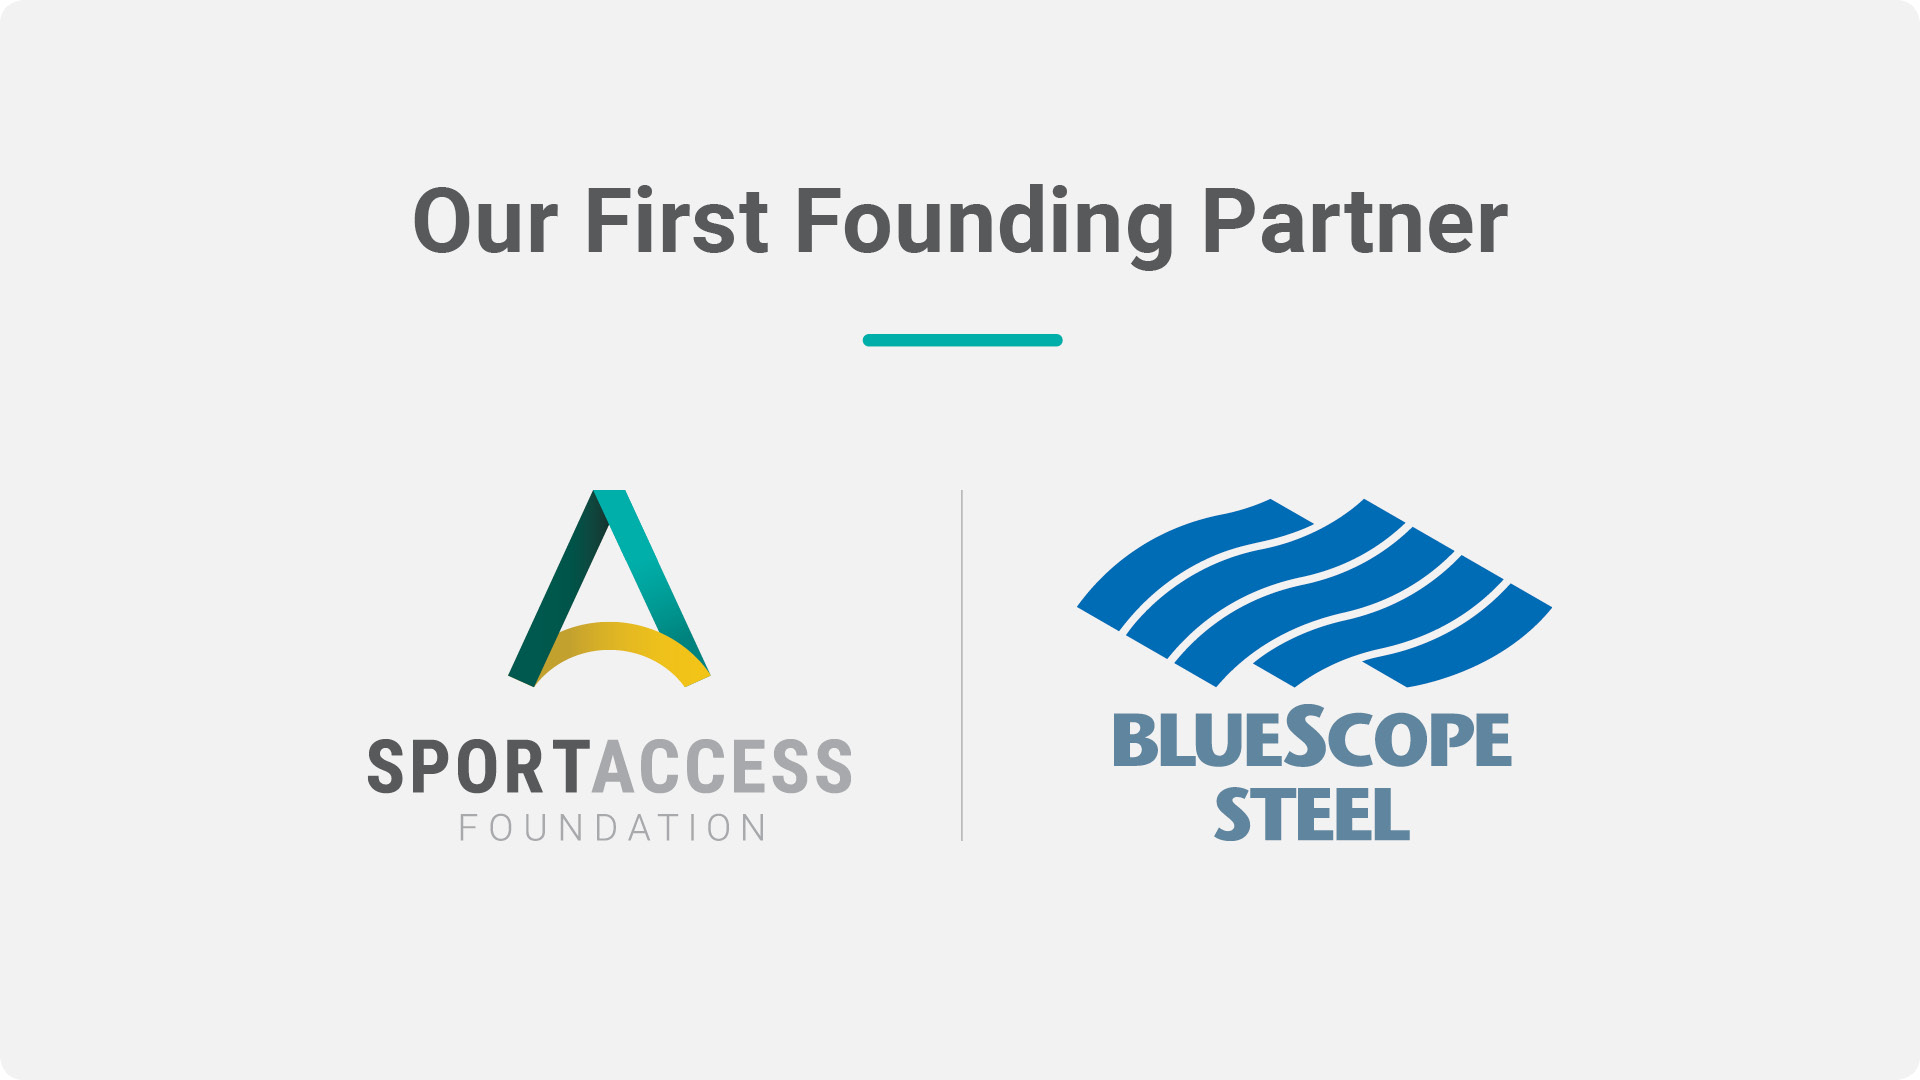 Our First Founding Partner - BlueScope